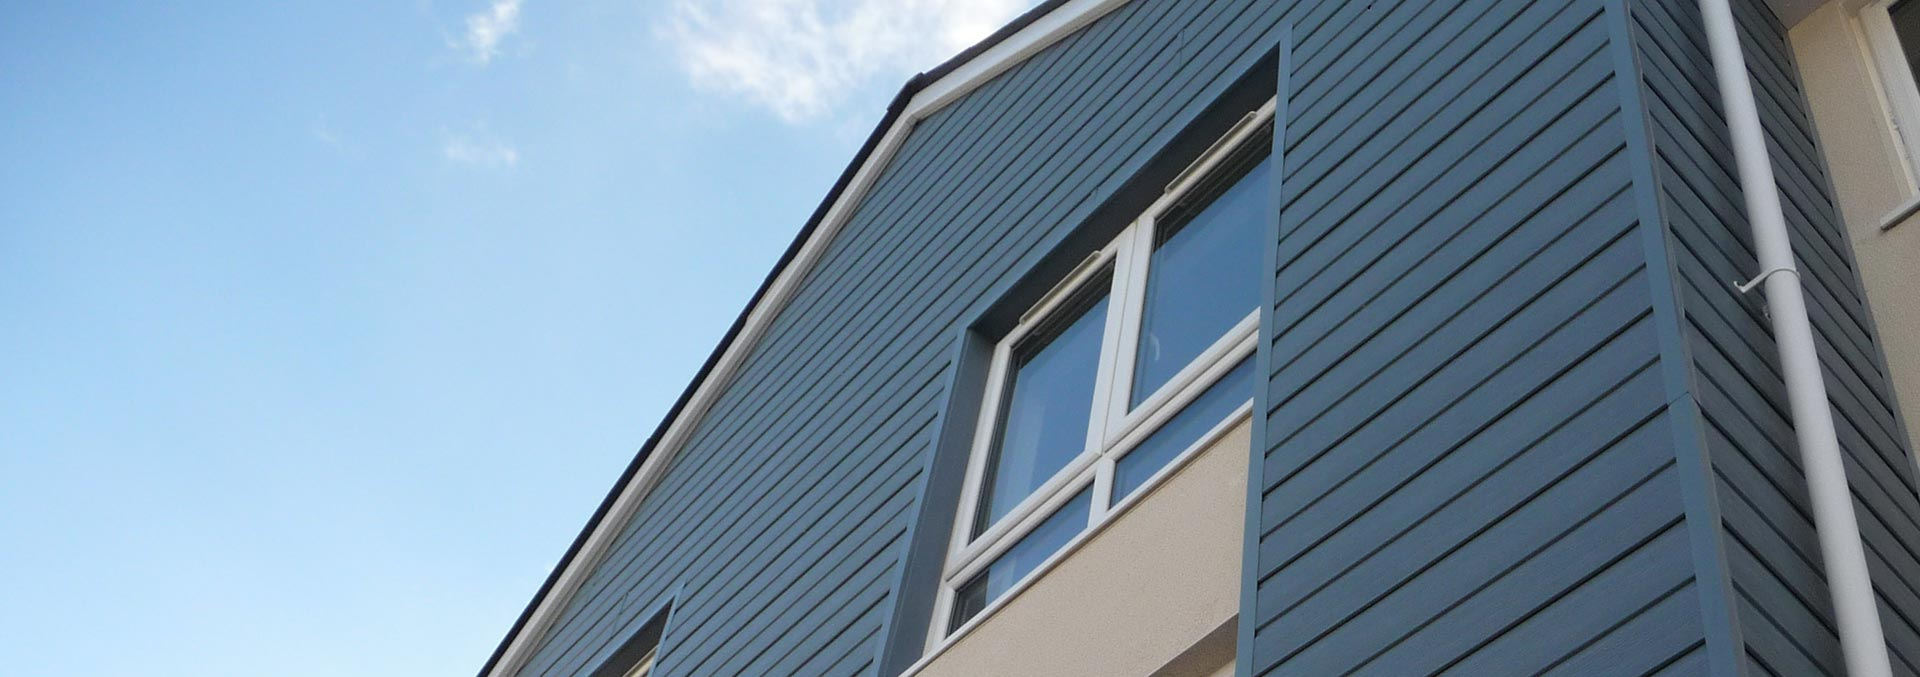 Replacement upvc windows with double glazing